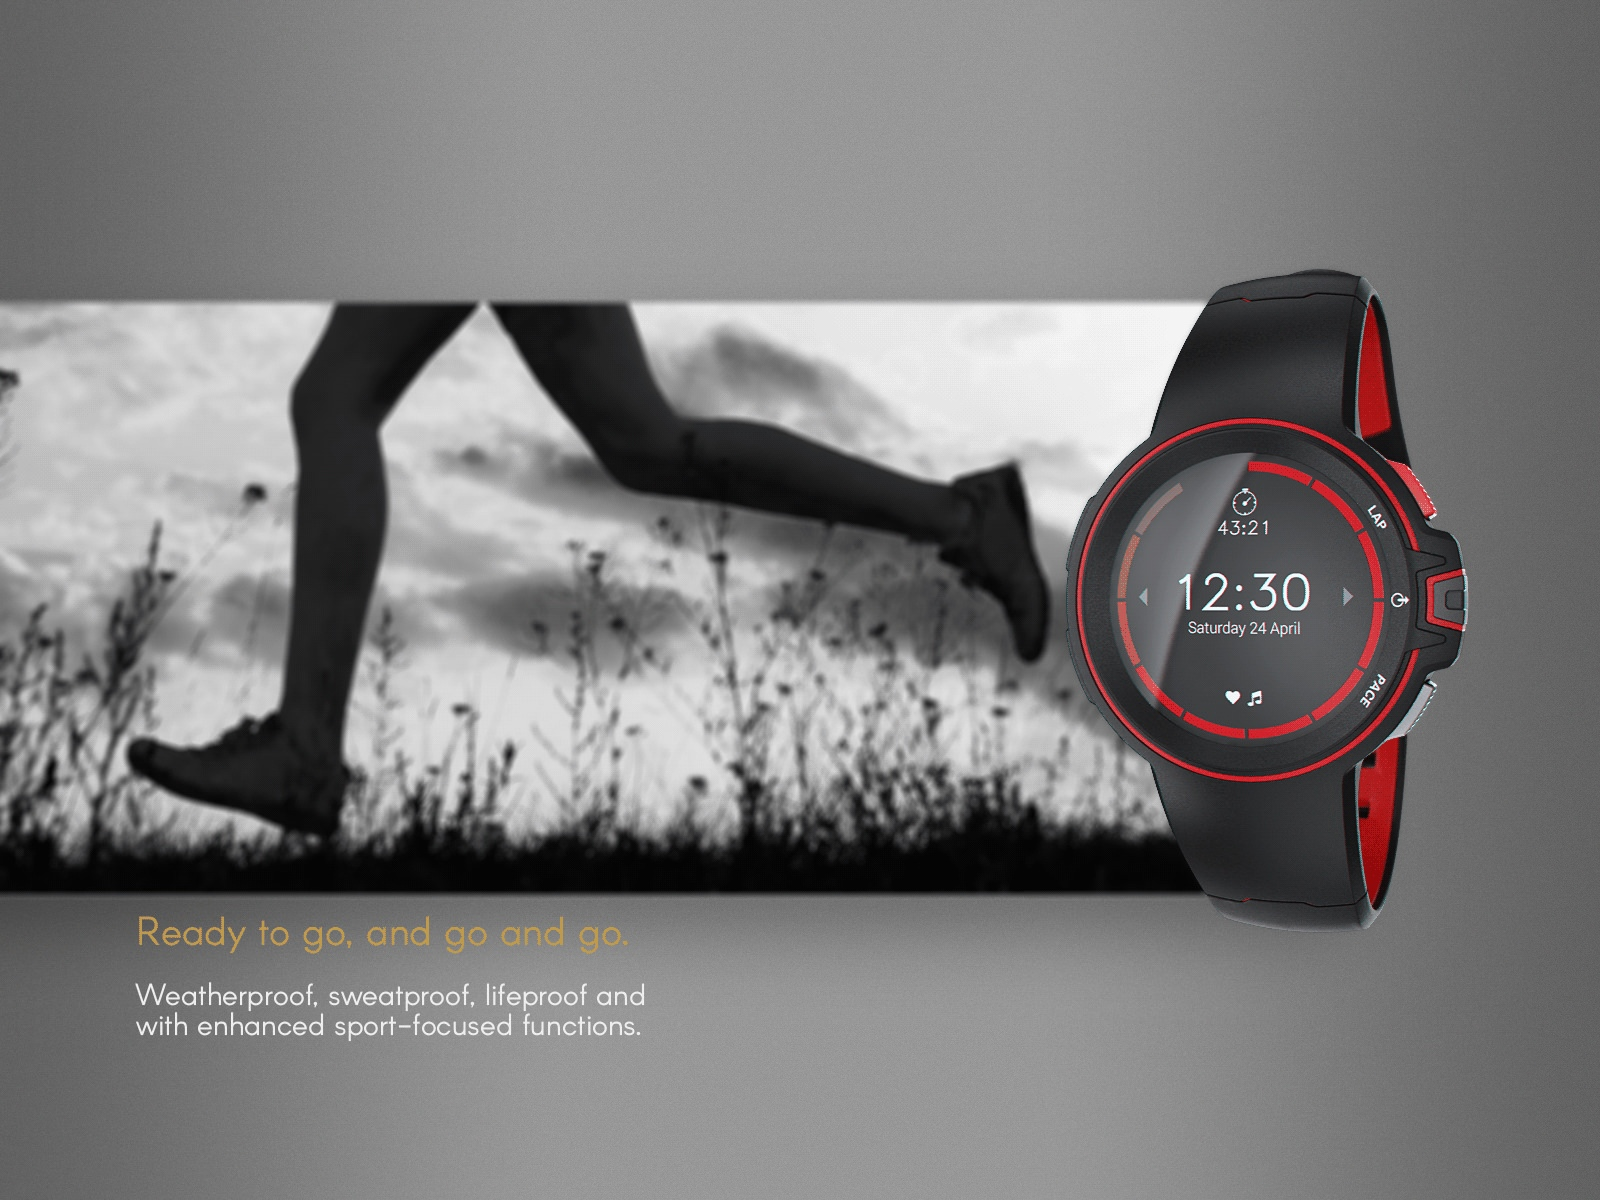 A red and black sport watch example design